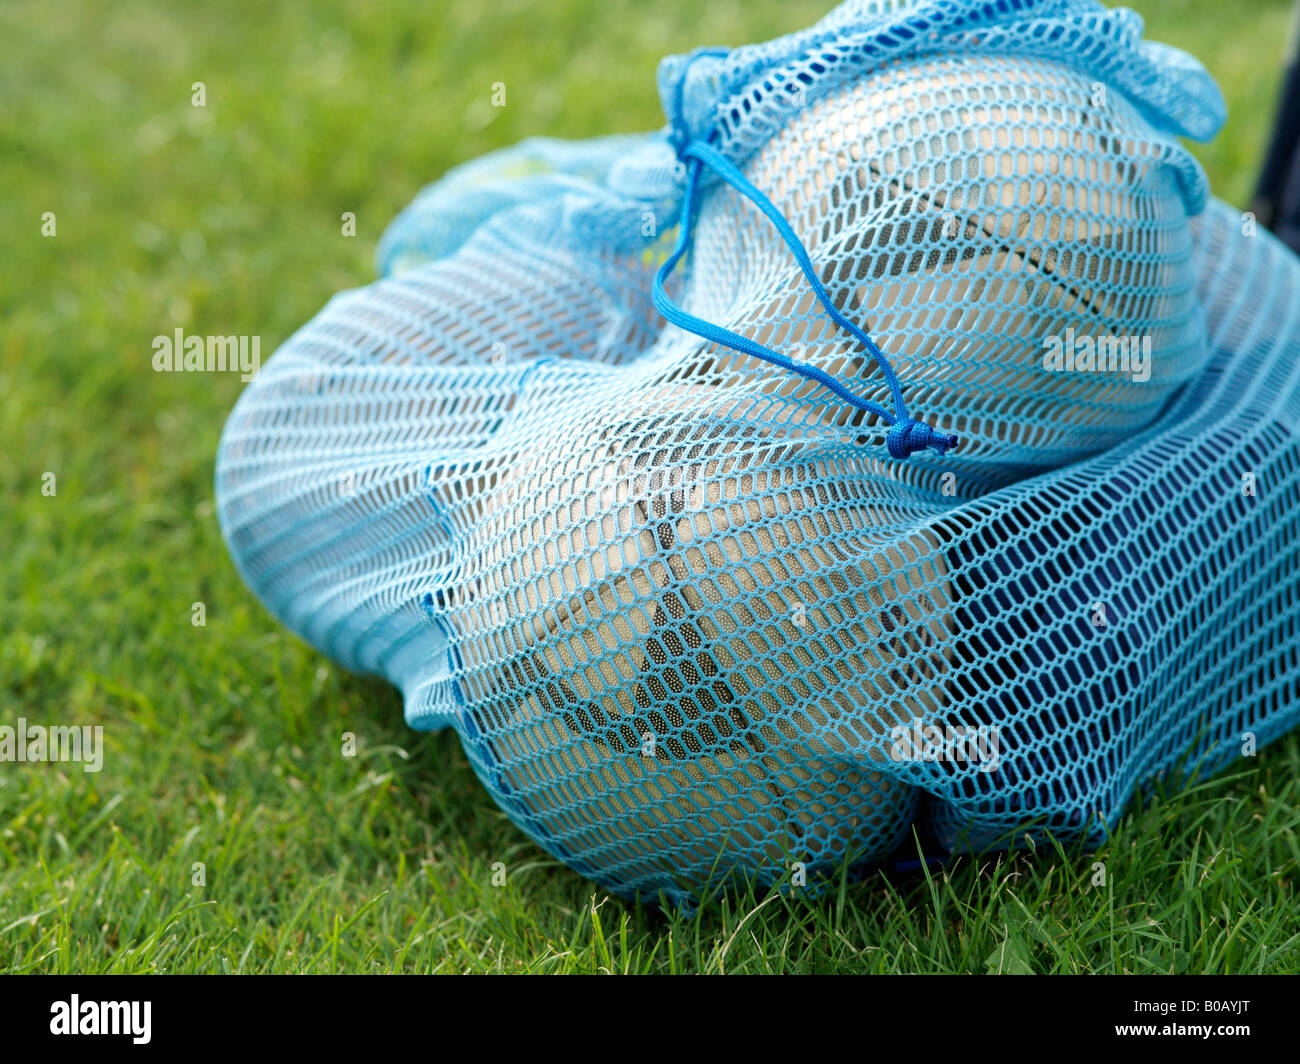 footballs in net bag - Stock Image